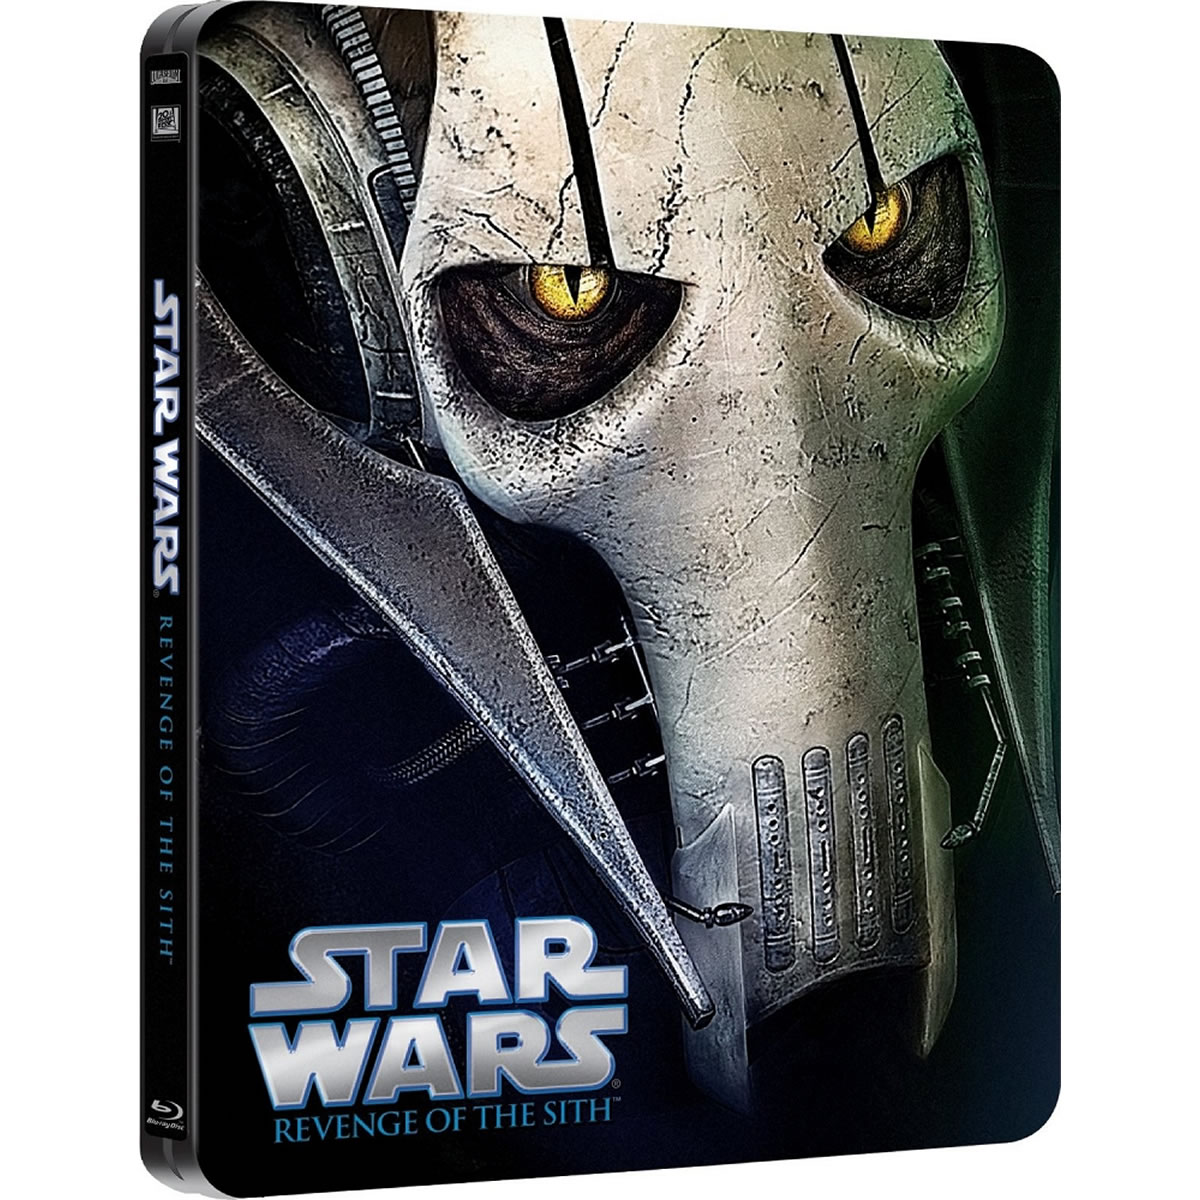 STAR WARS EPISODE III: REVENGE OF THE SITH Limited Edition Steelbook [Imported] (BLU-RAY)